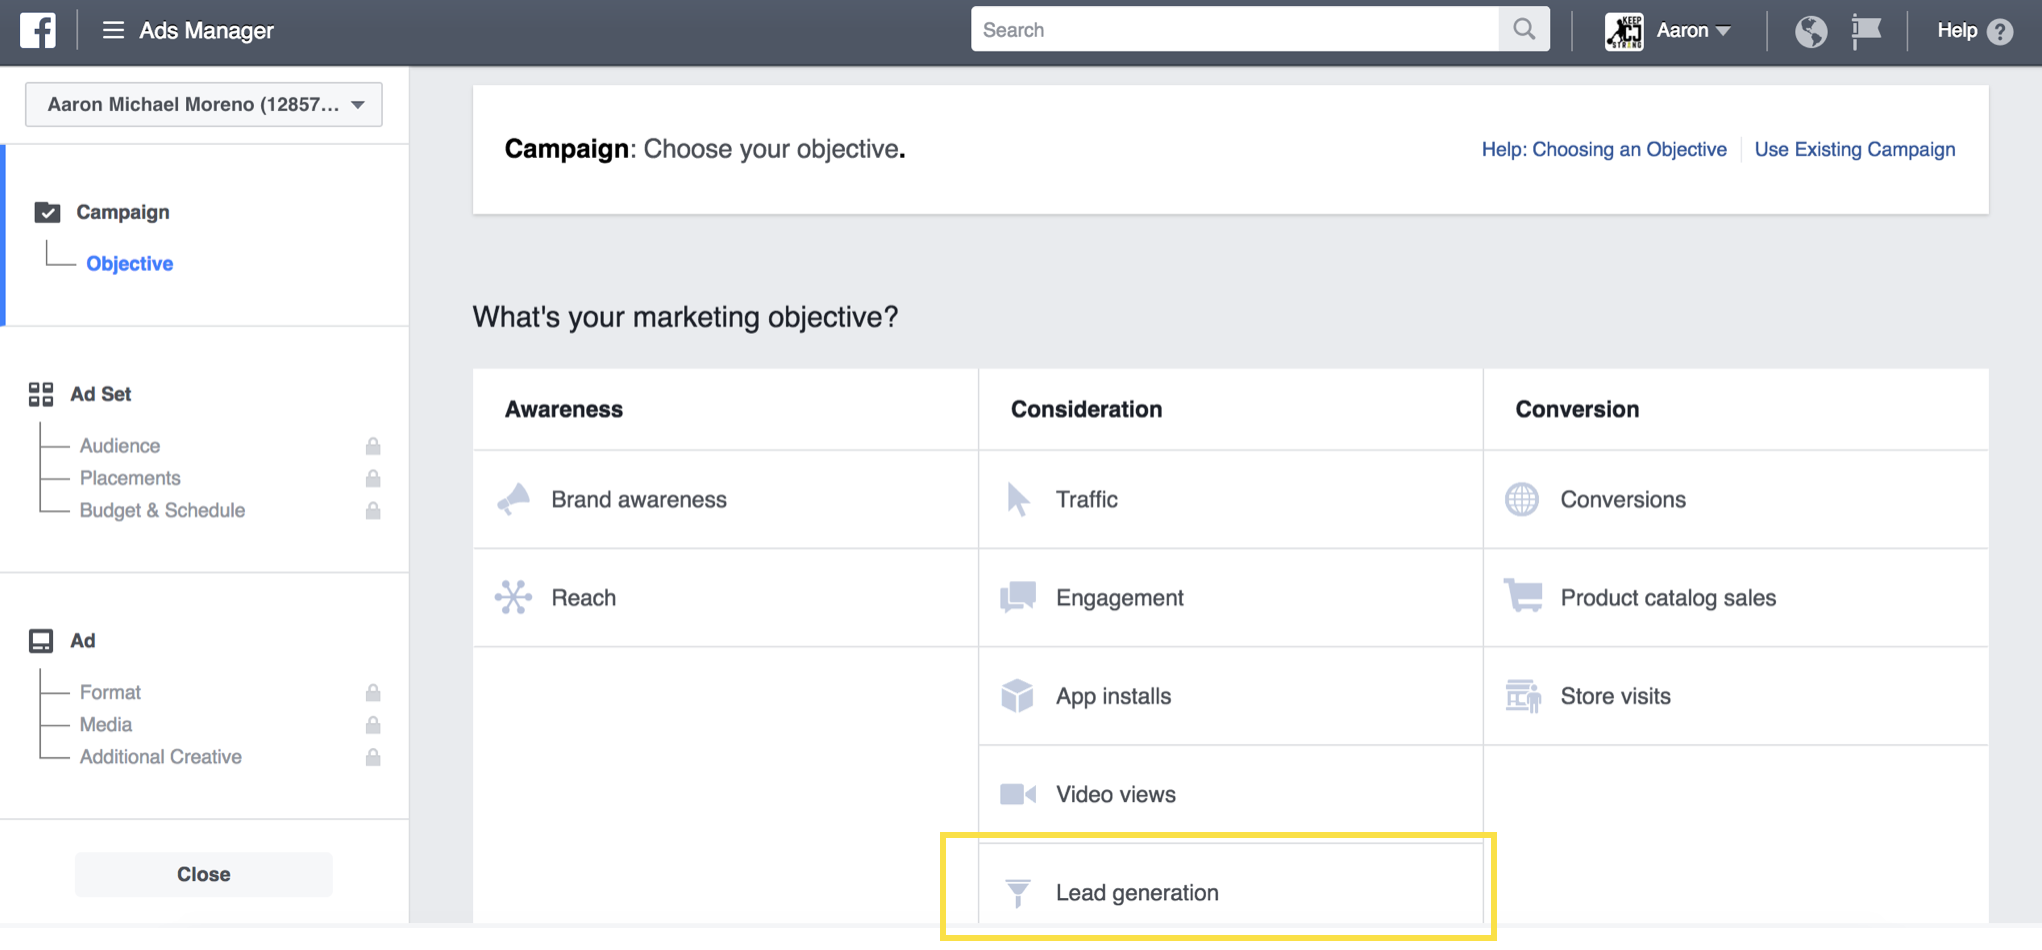 To get started, navigate to your Facebook Ads Manager account and click create new ad then select Lead generation. Facebook will walk you through from there!